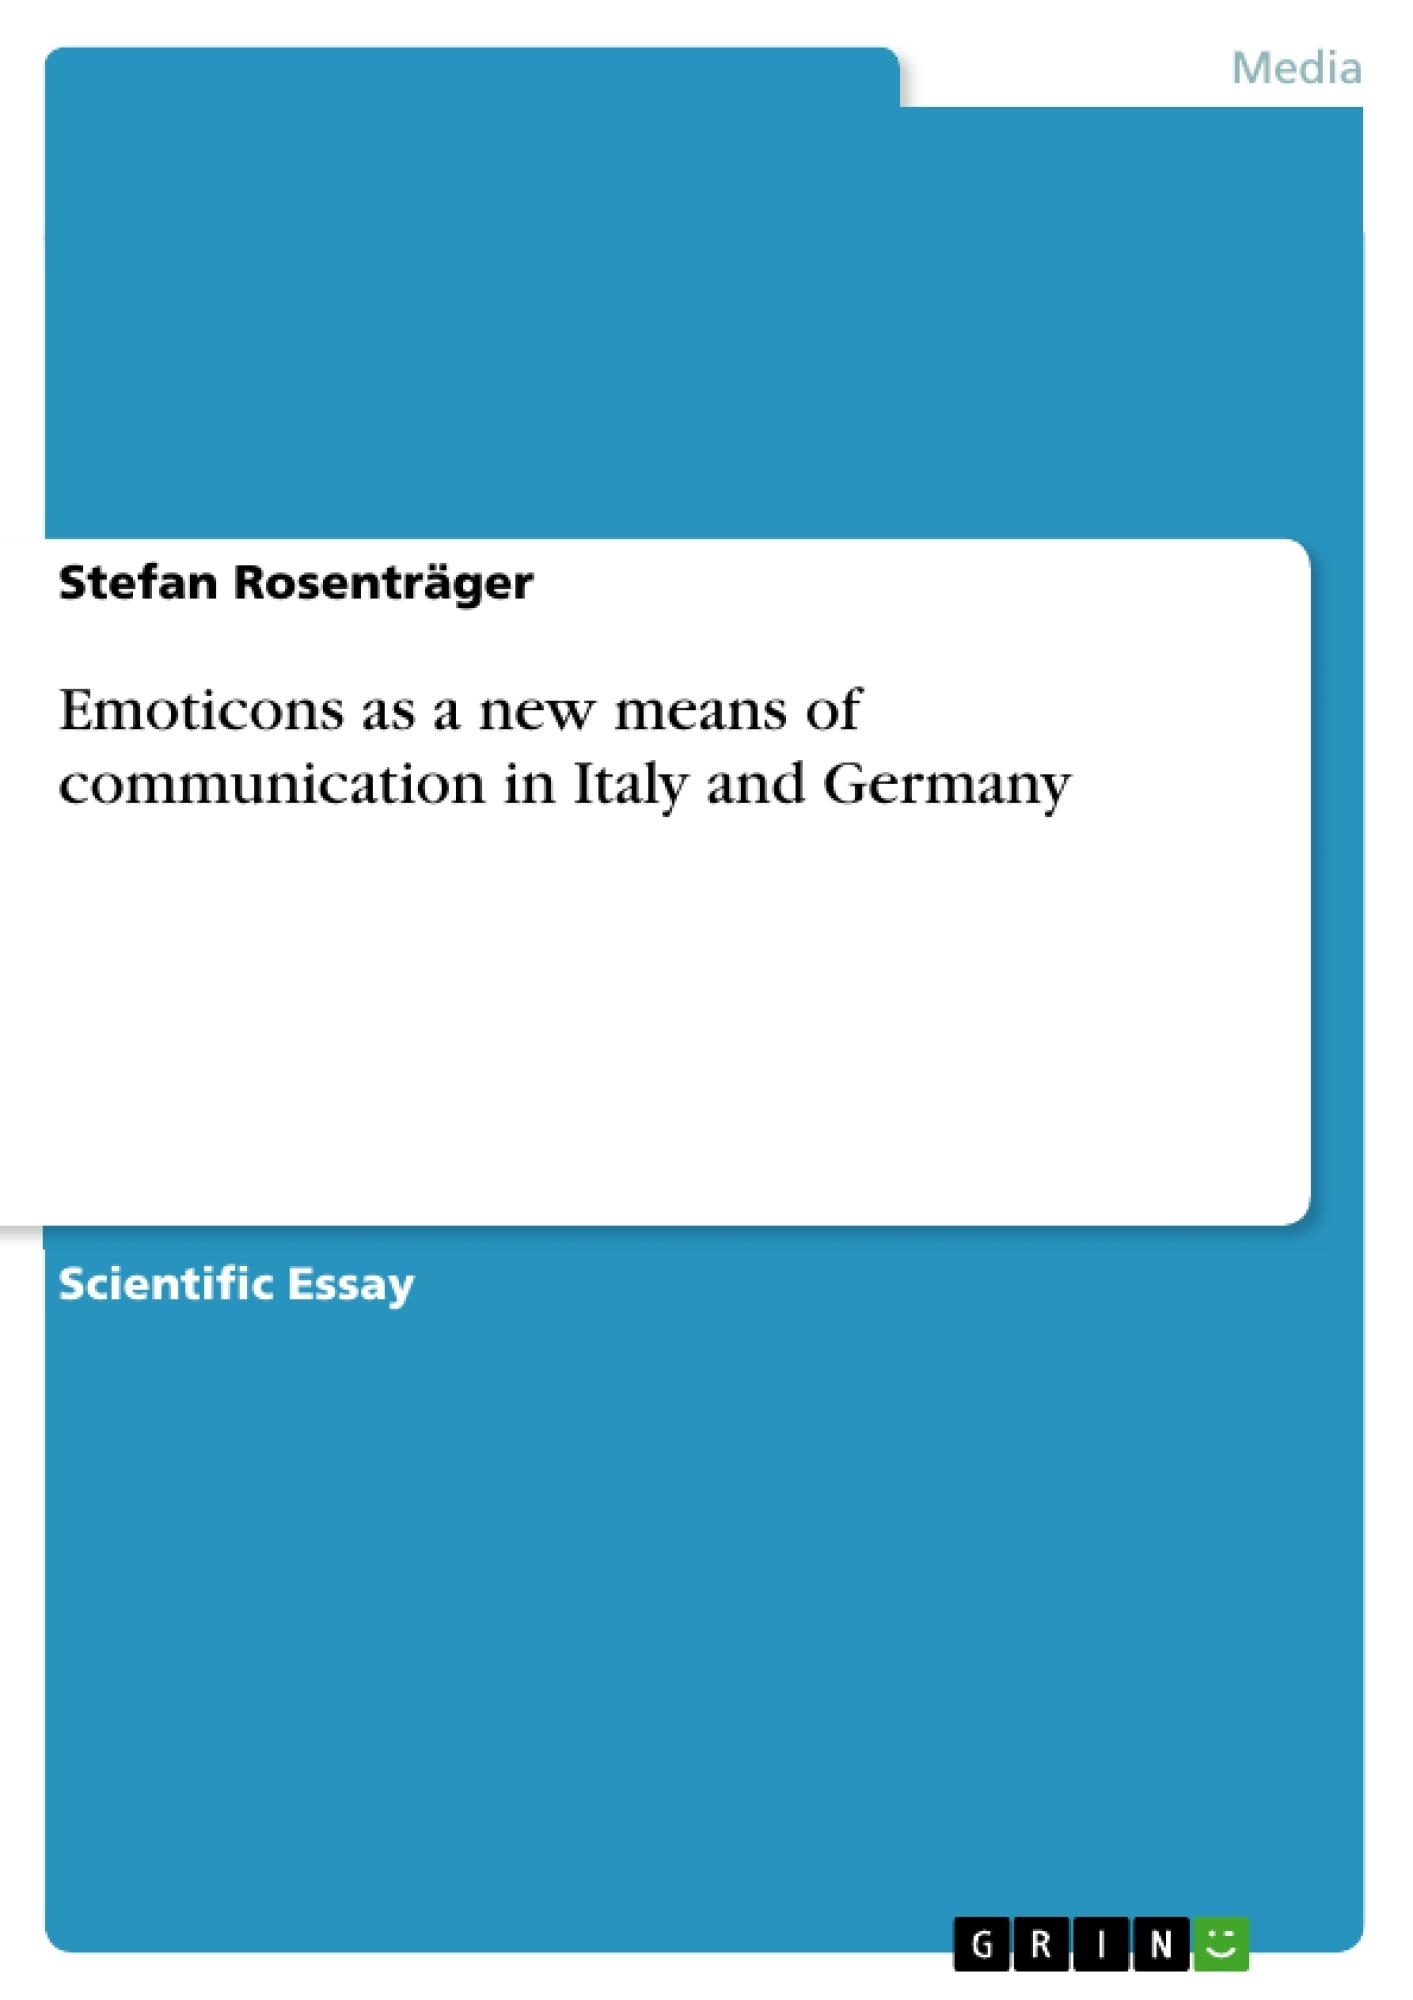 Term papers on italy